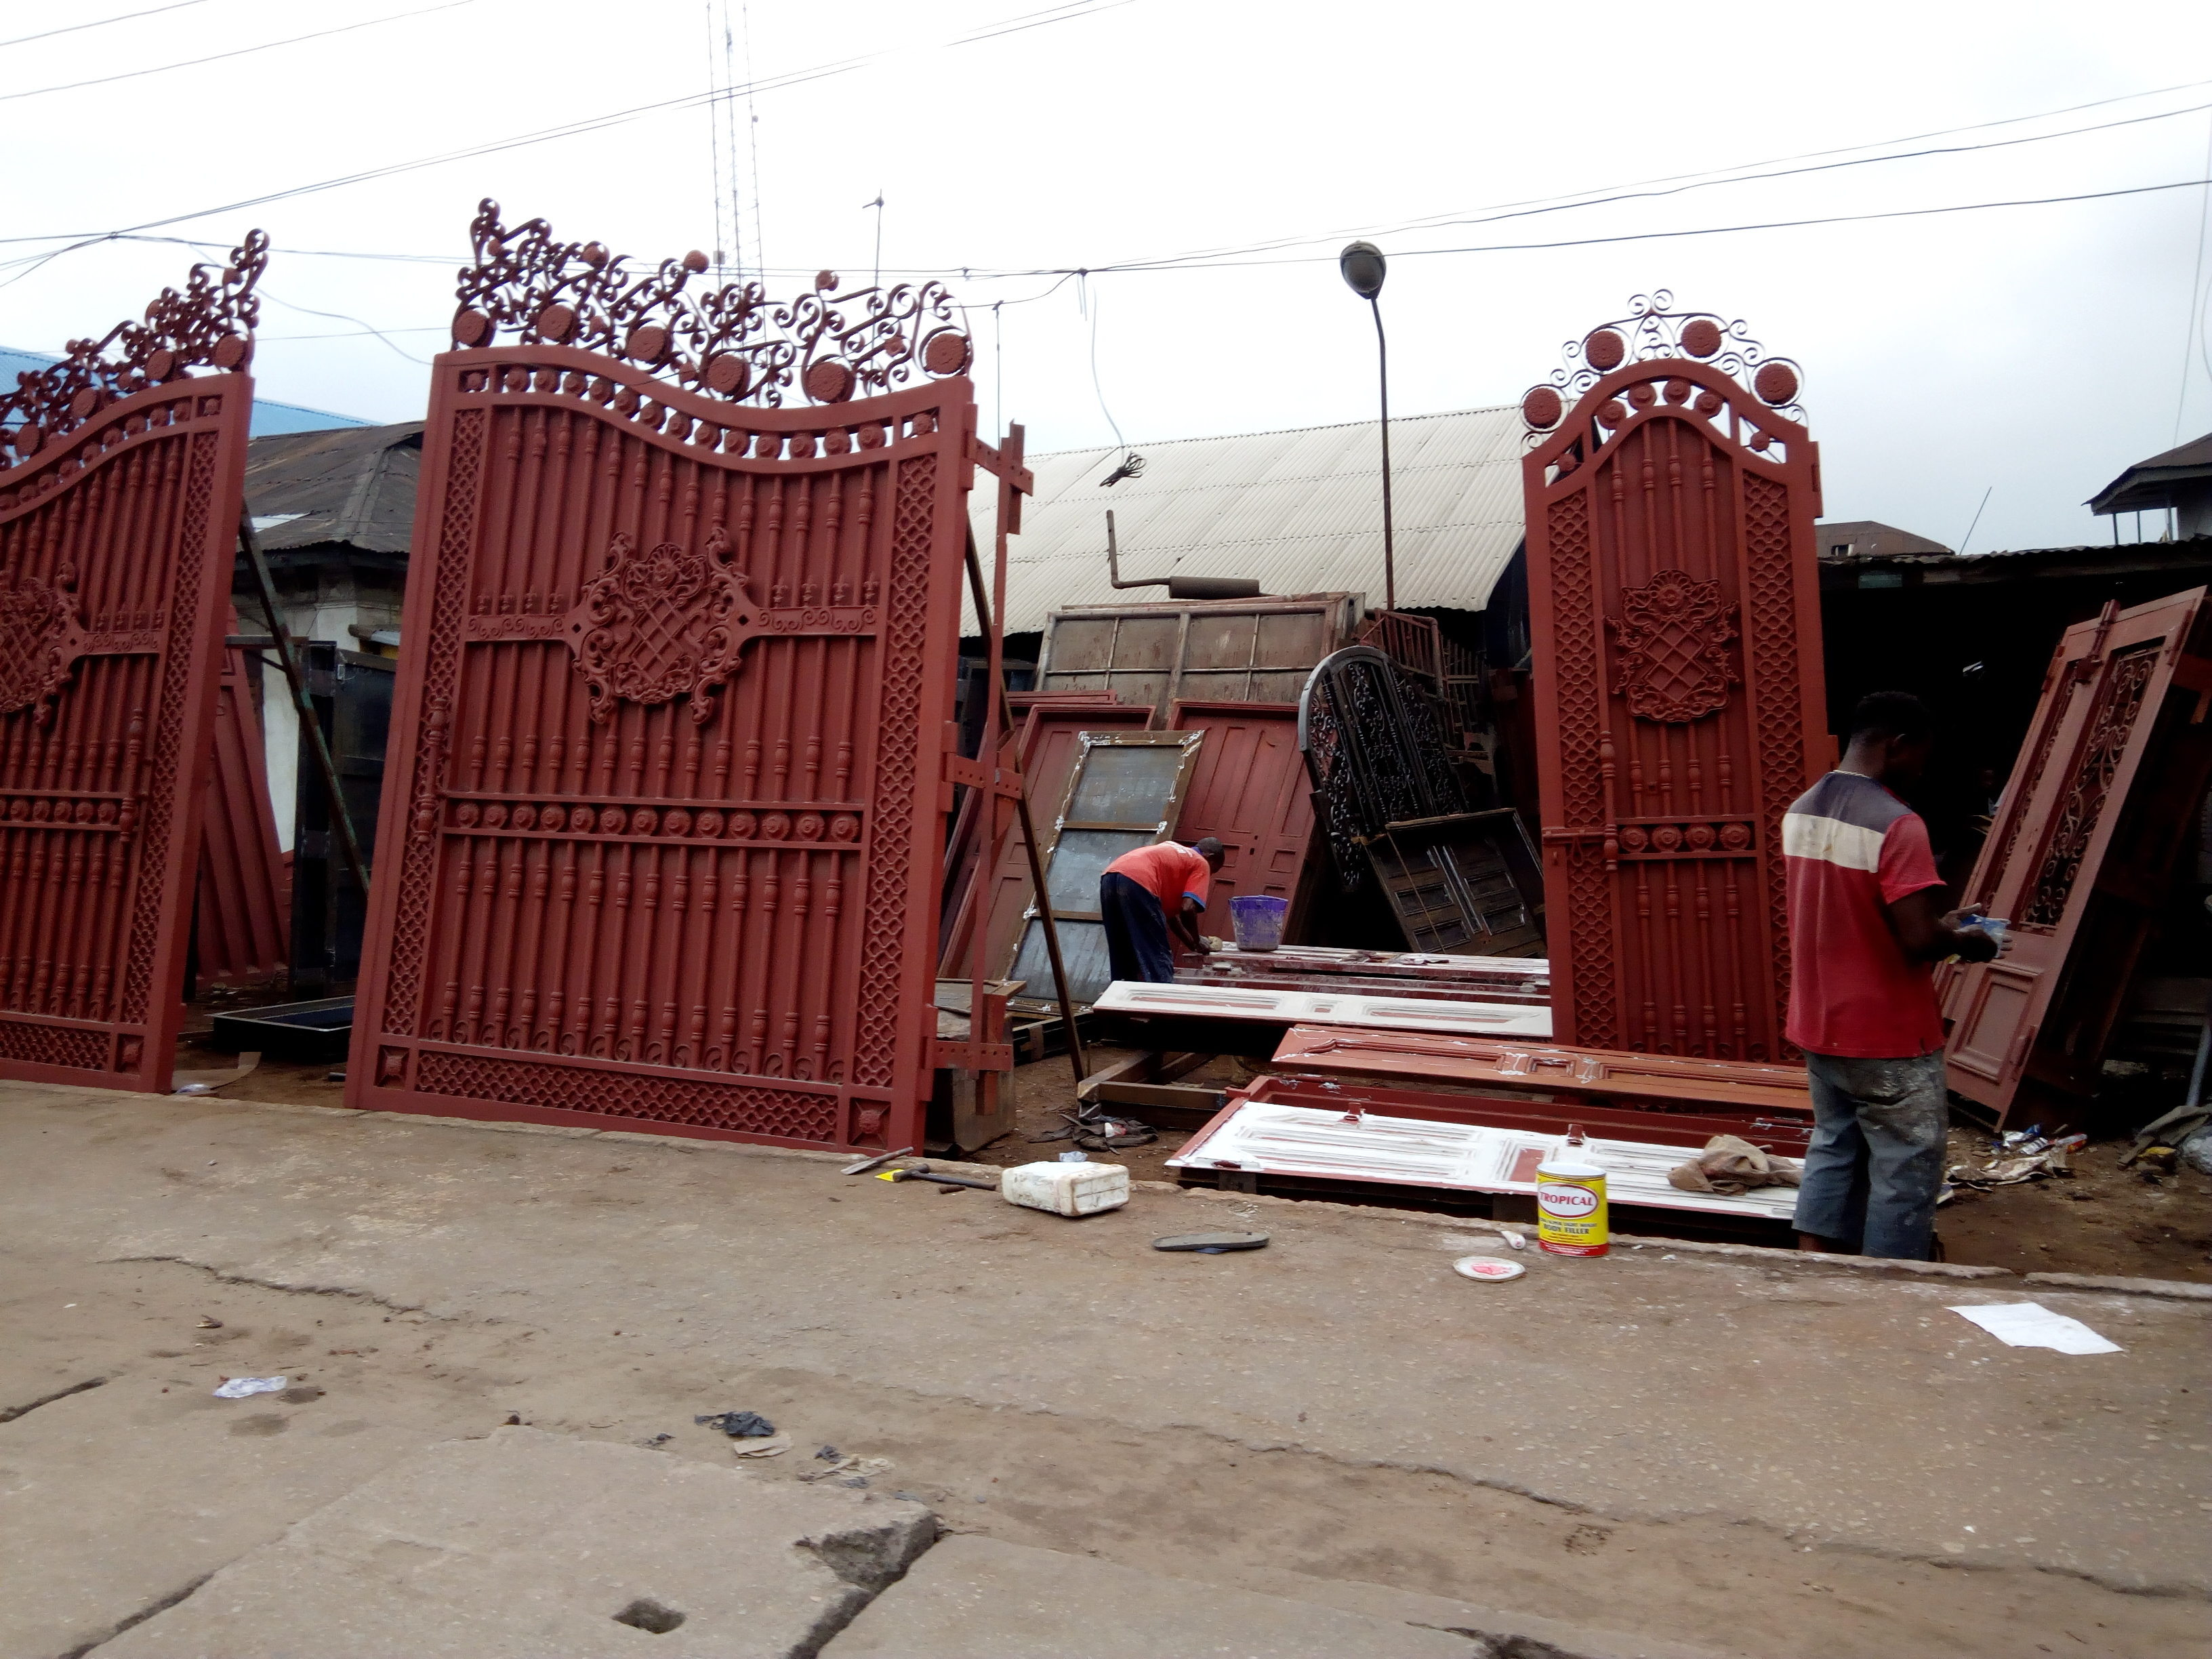 Iron works artisans deliver their jobs using generators